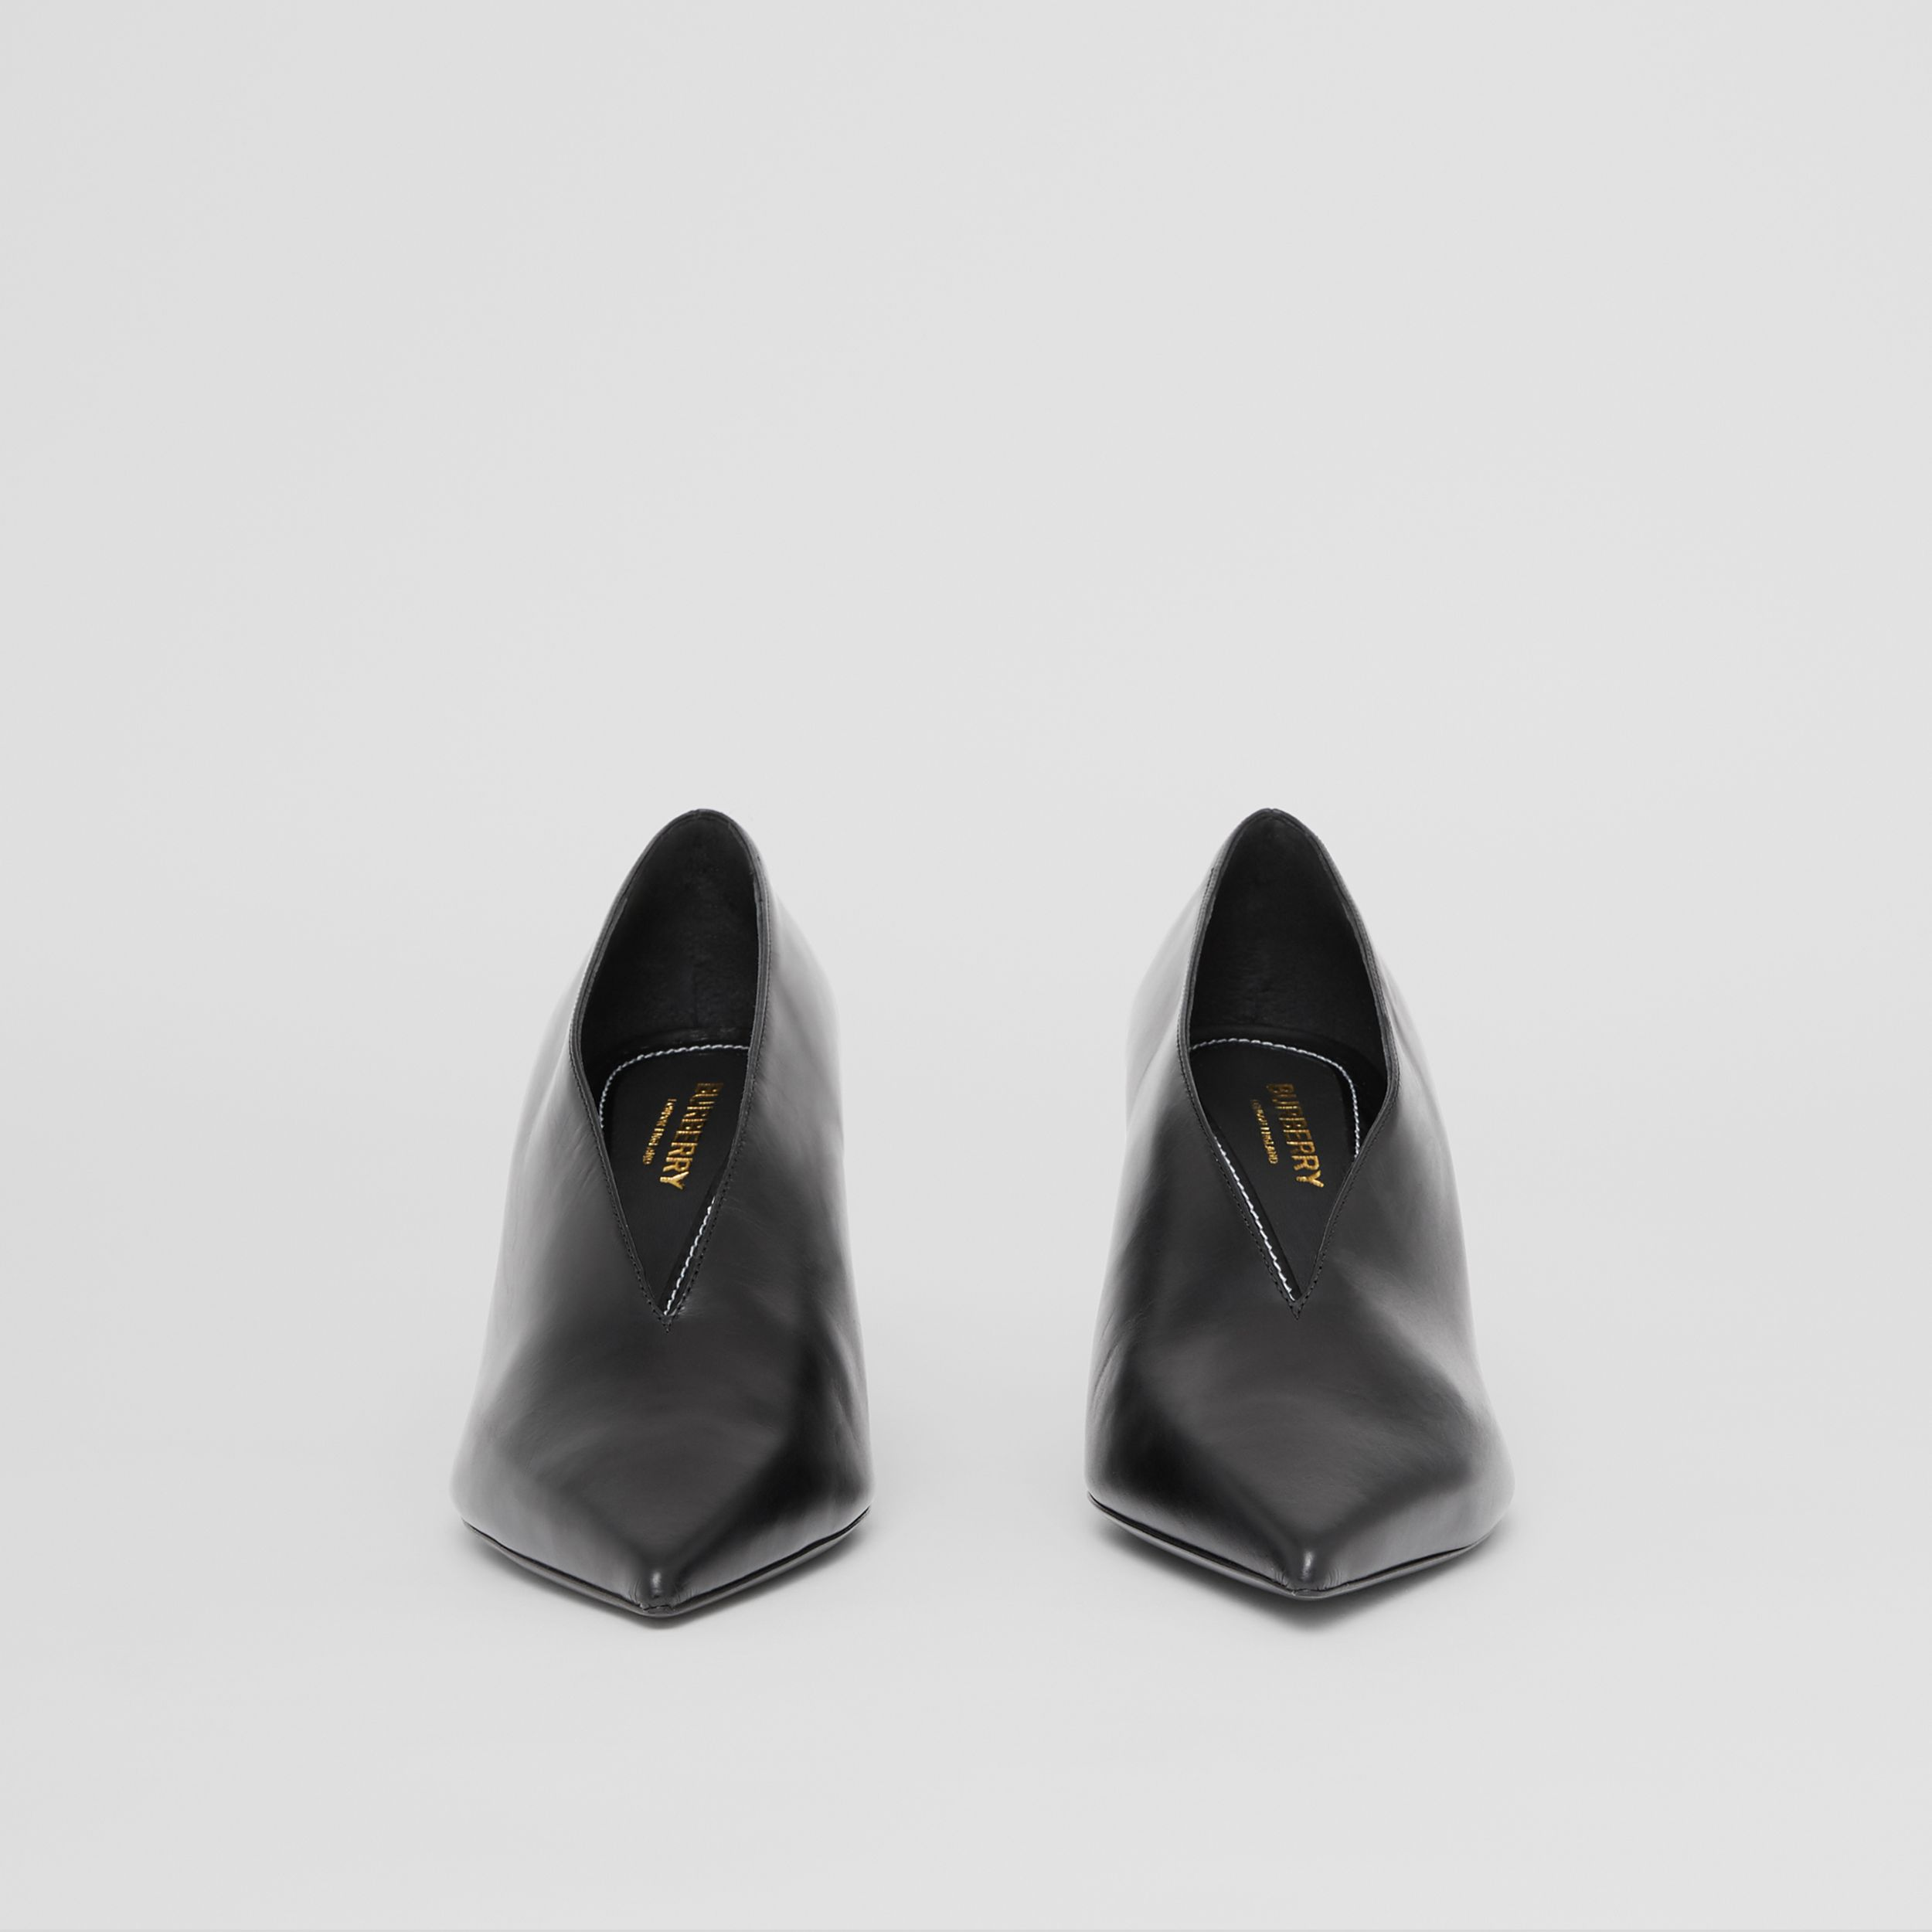 Leather Point-toe Pumps in Black - Women | Burberry Canada - 4